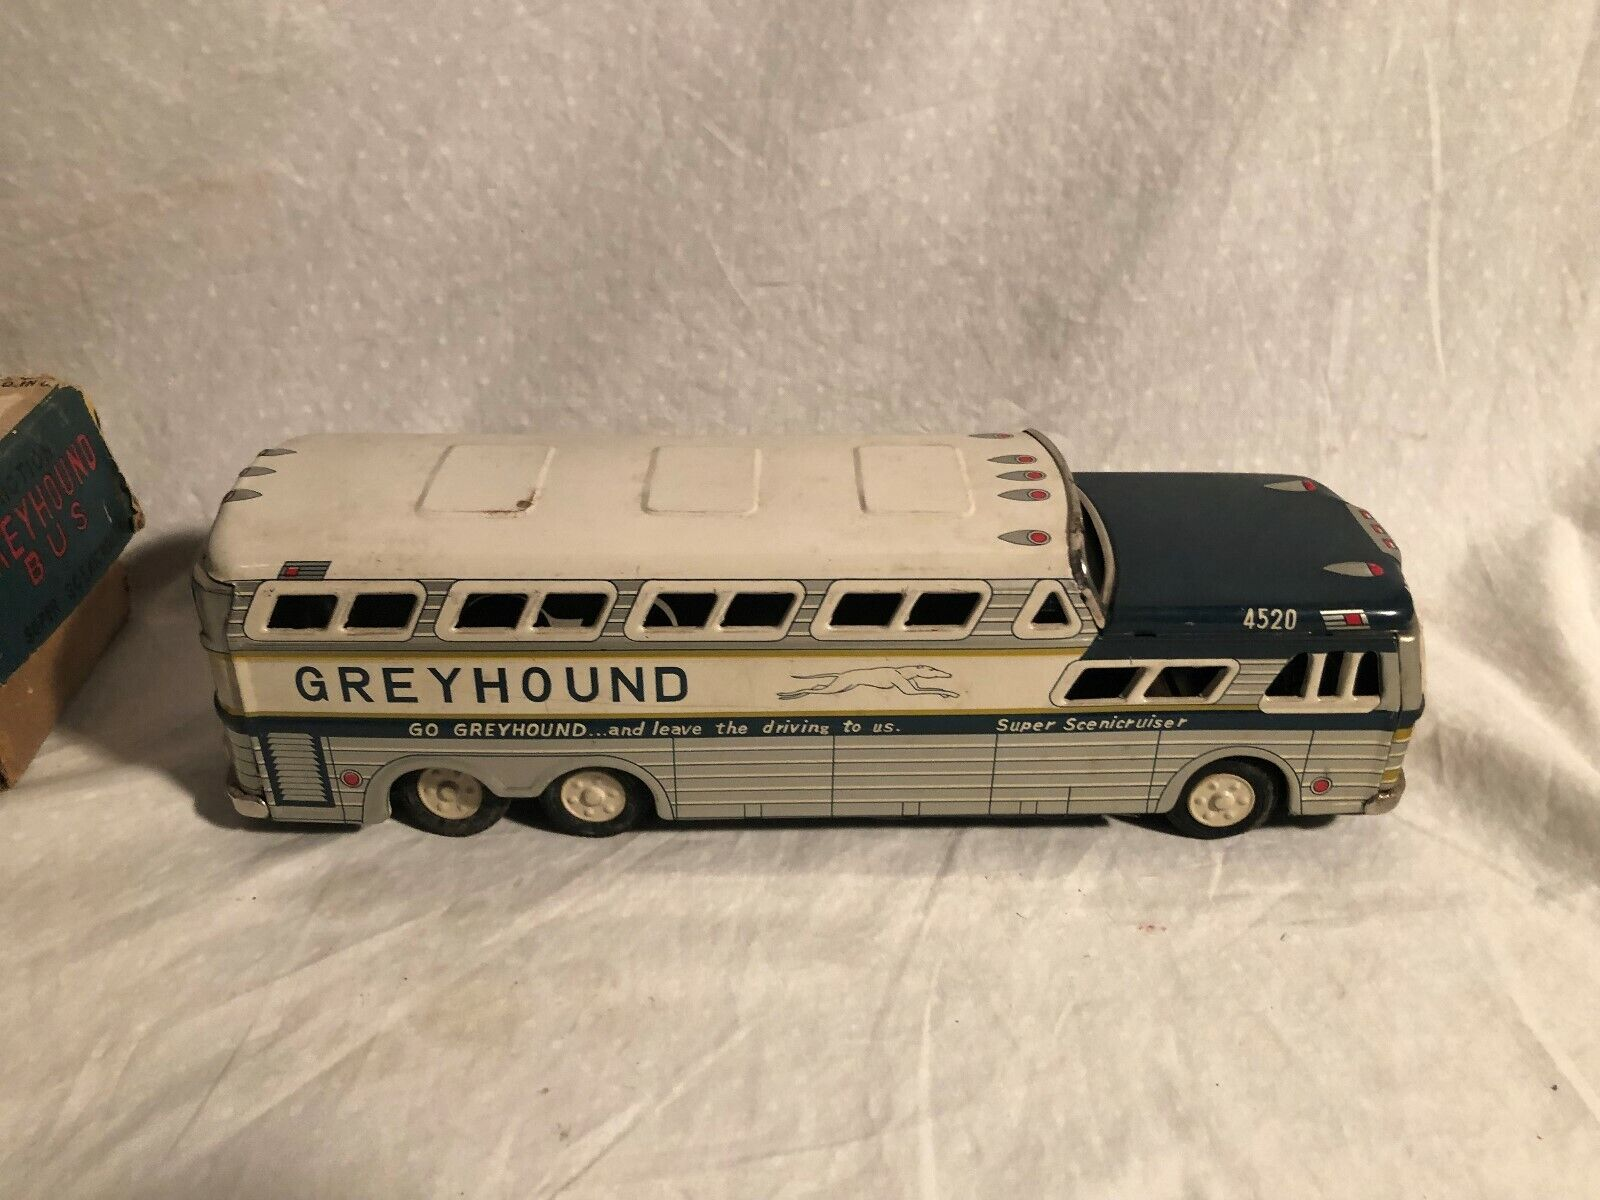 Vintage Tin Friction Drive grigiohound Bus 4520 with Original Box